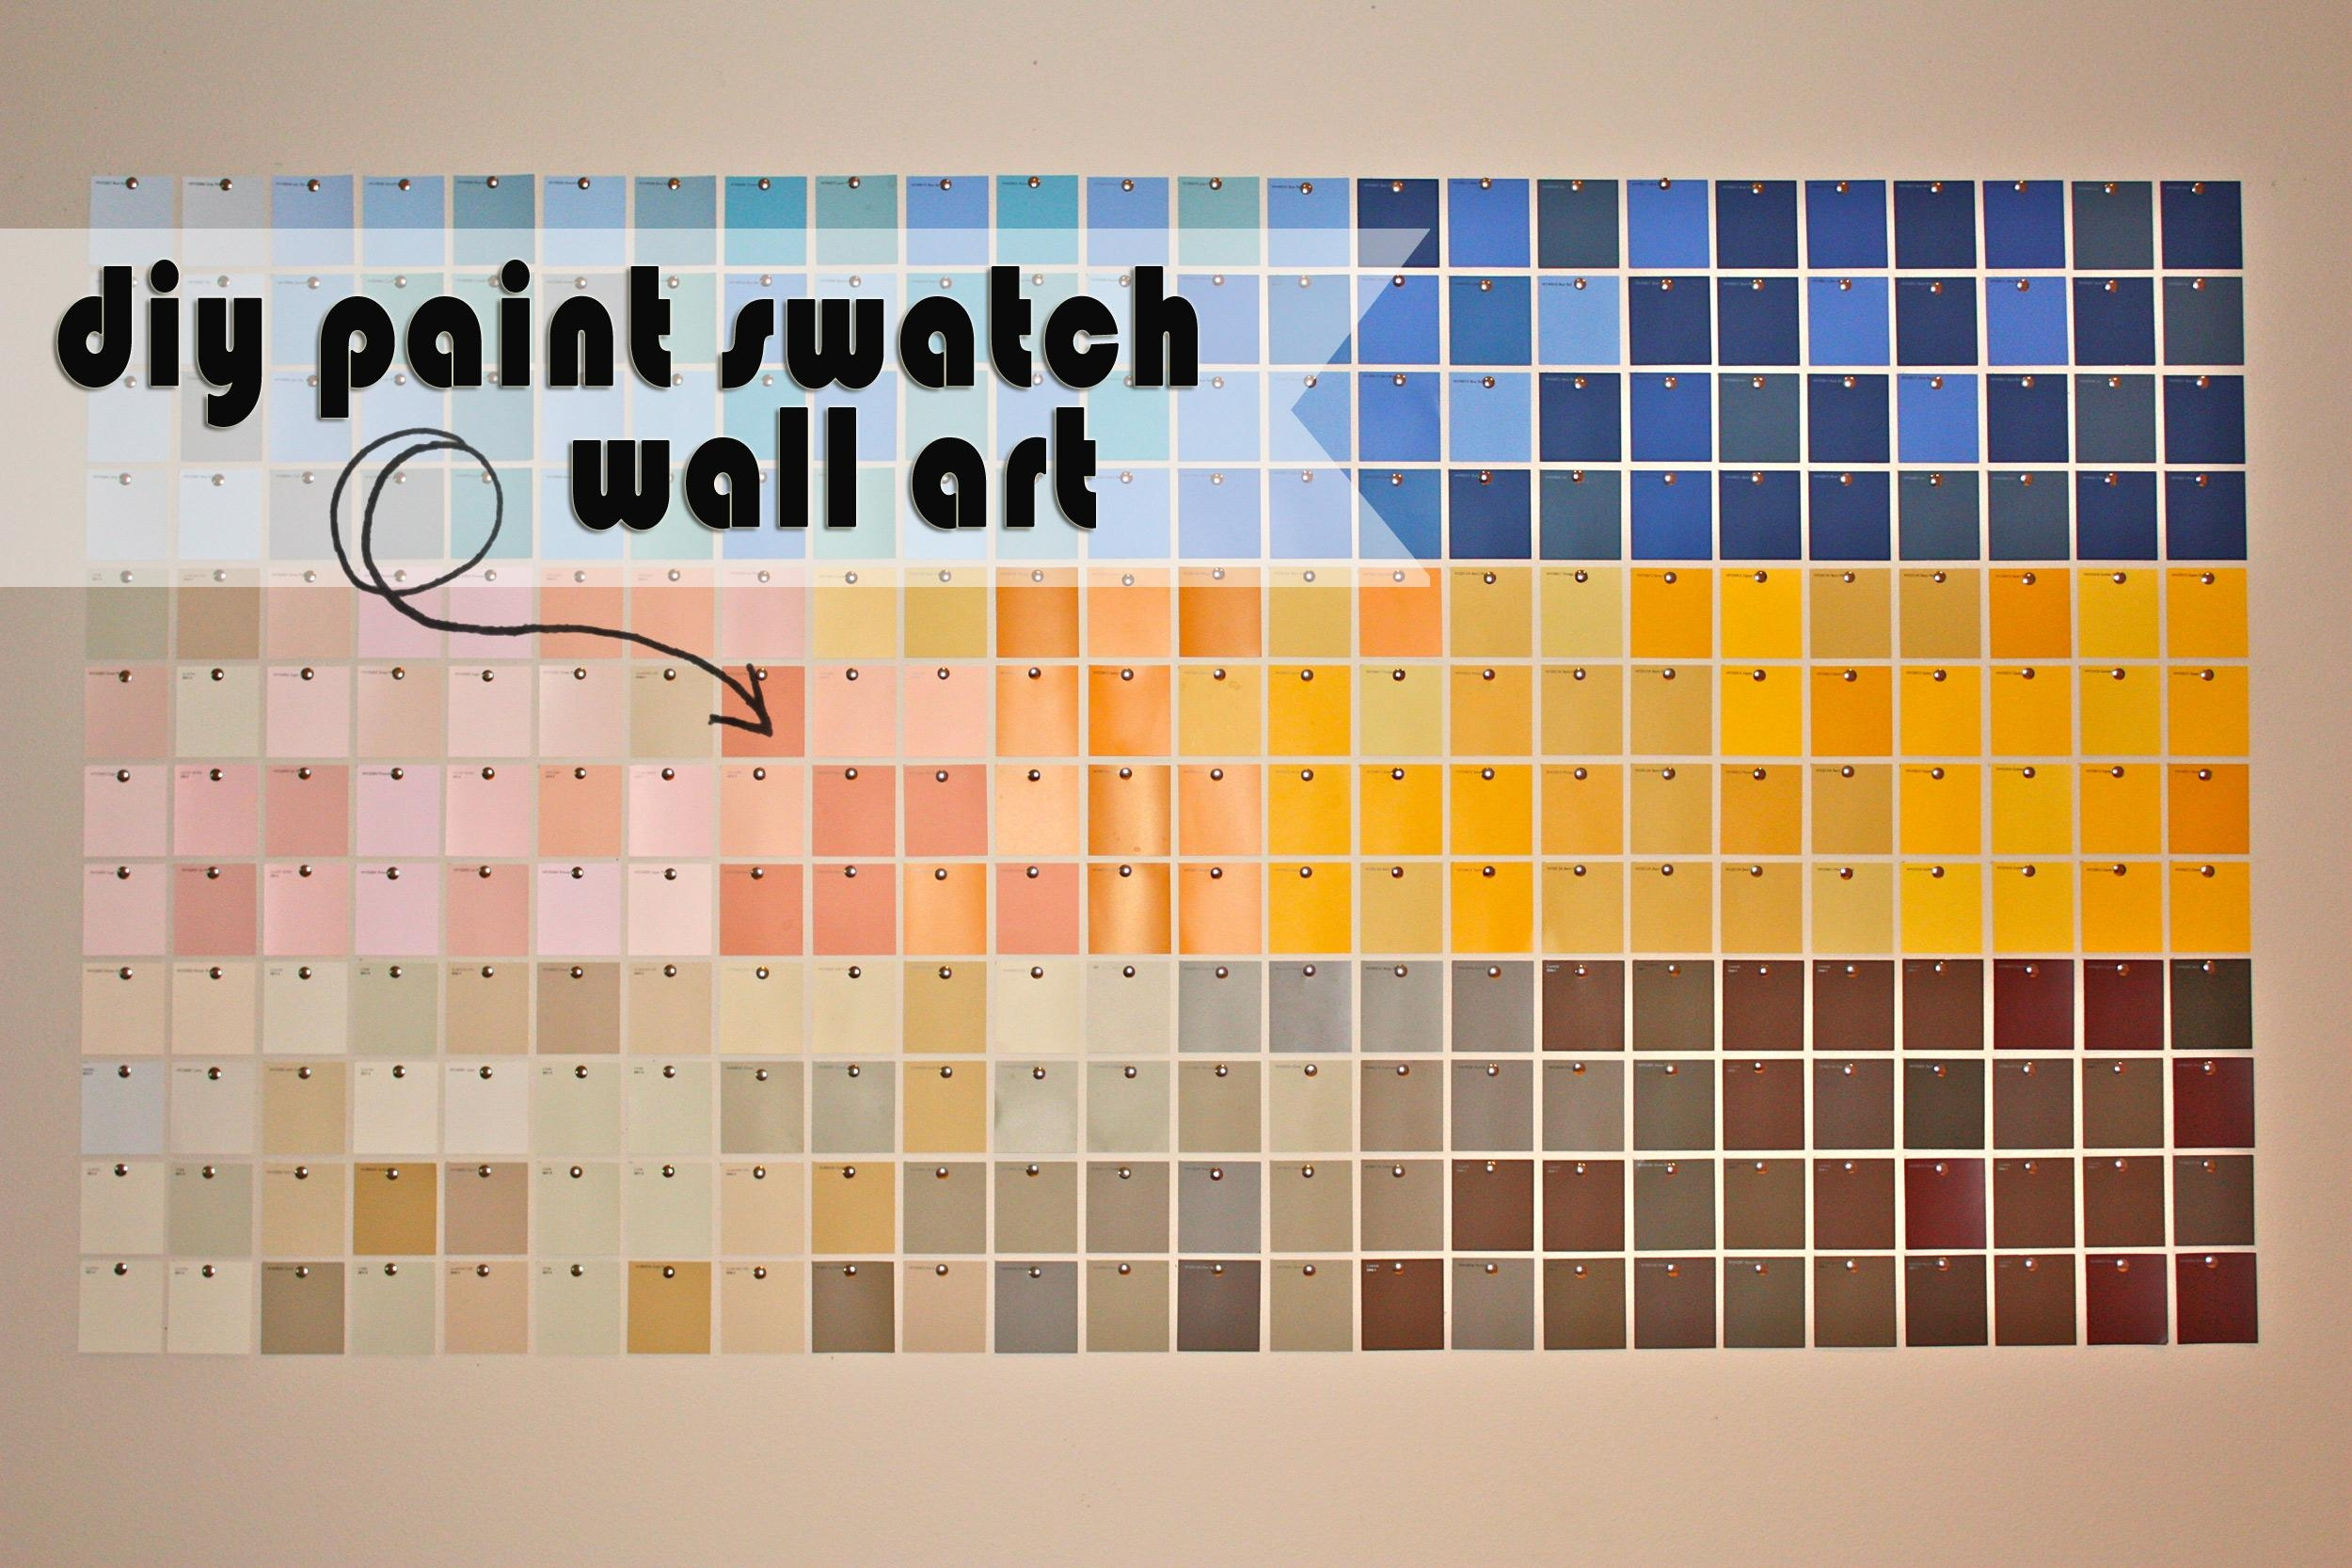 Diy Paint Swatch Wall Art | Kristen Mcashan With Regard To Paint Swatch Wall Art (View 1 of 20)